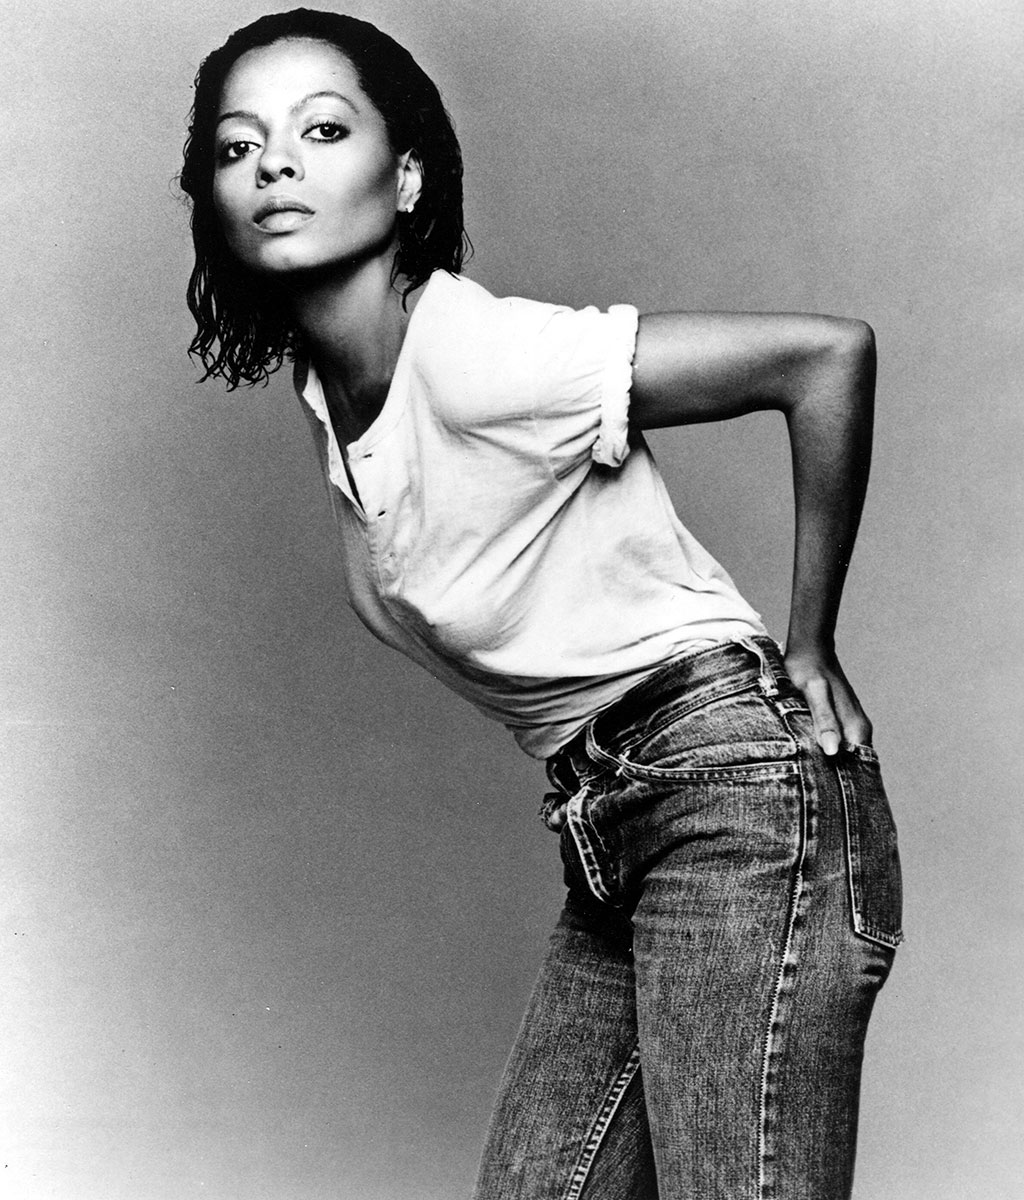 Diana Ross by Franceso Scavullo